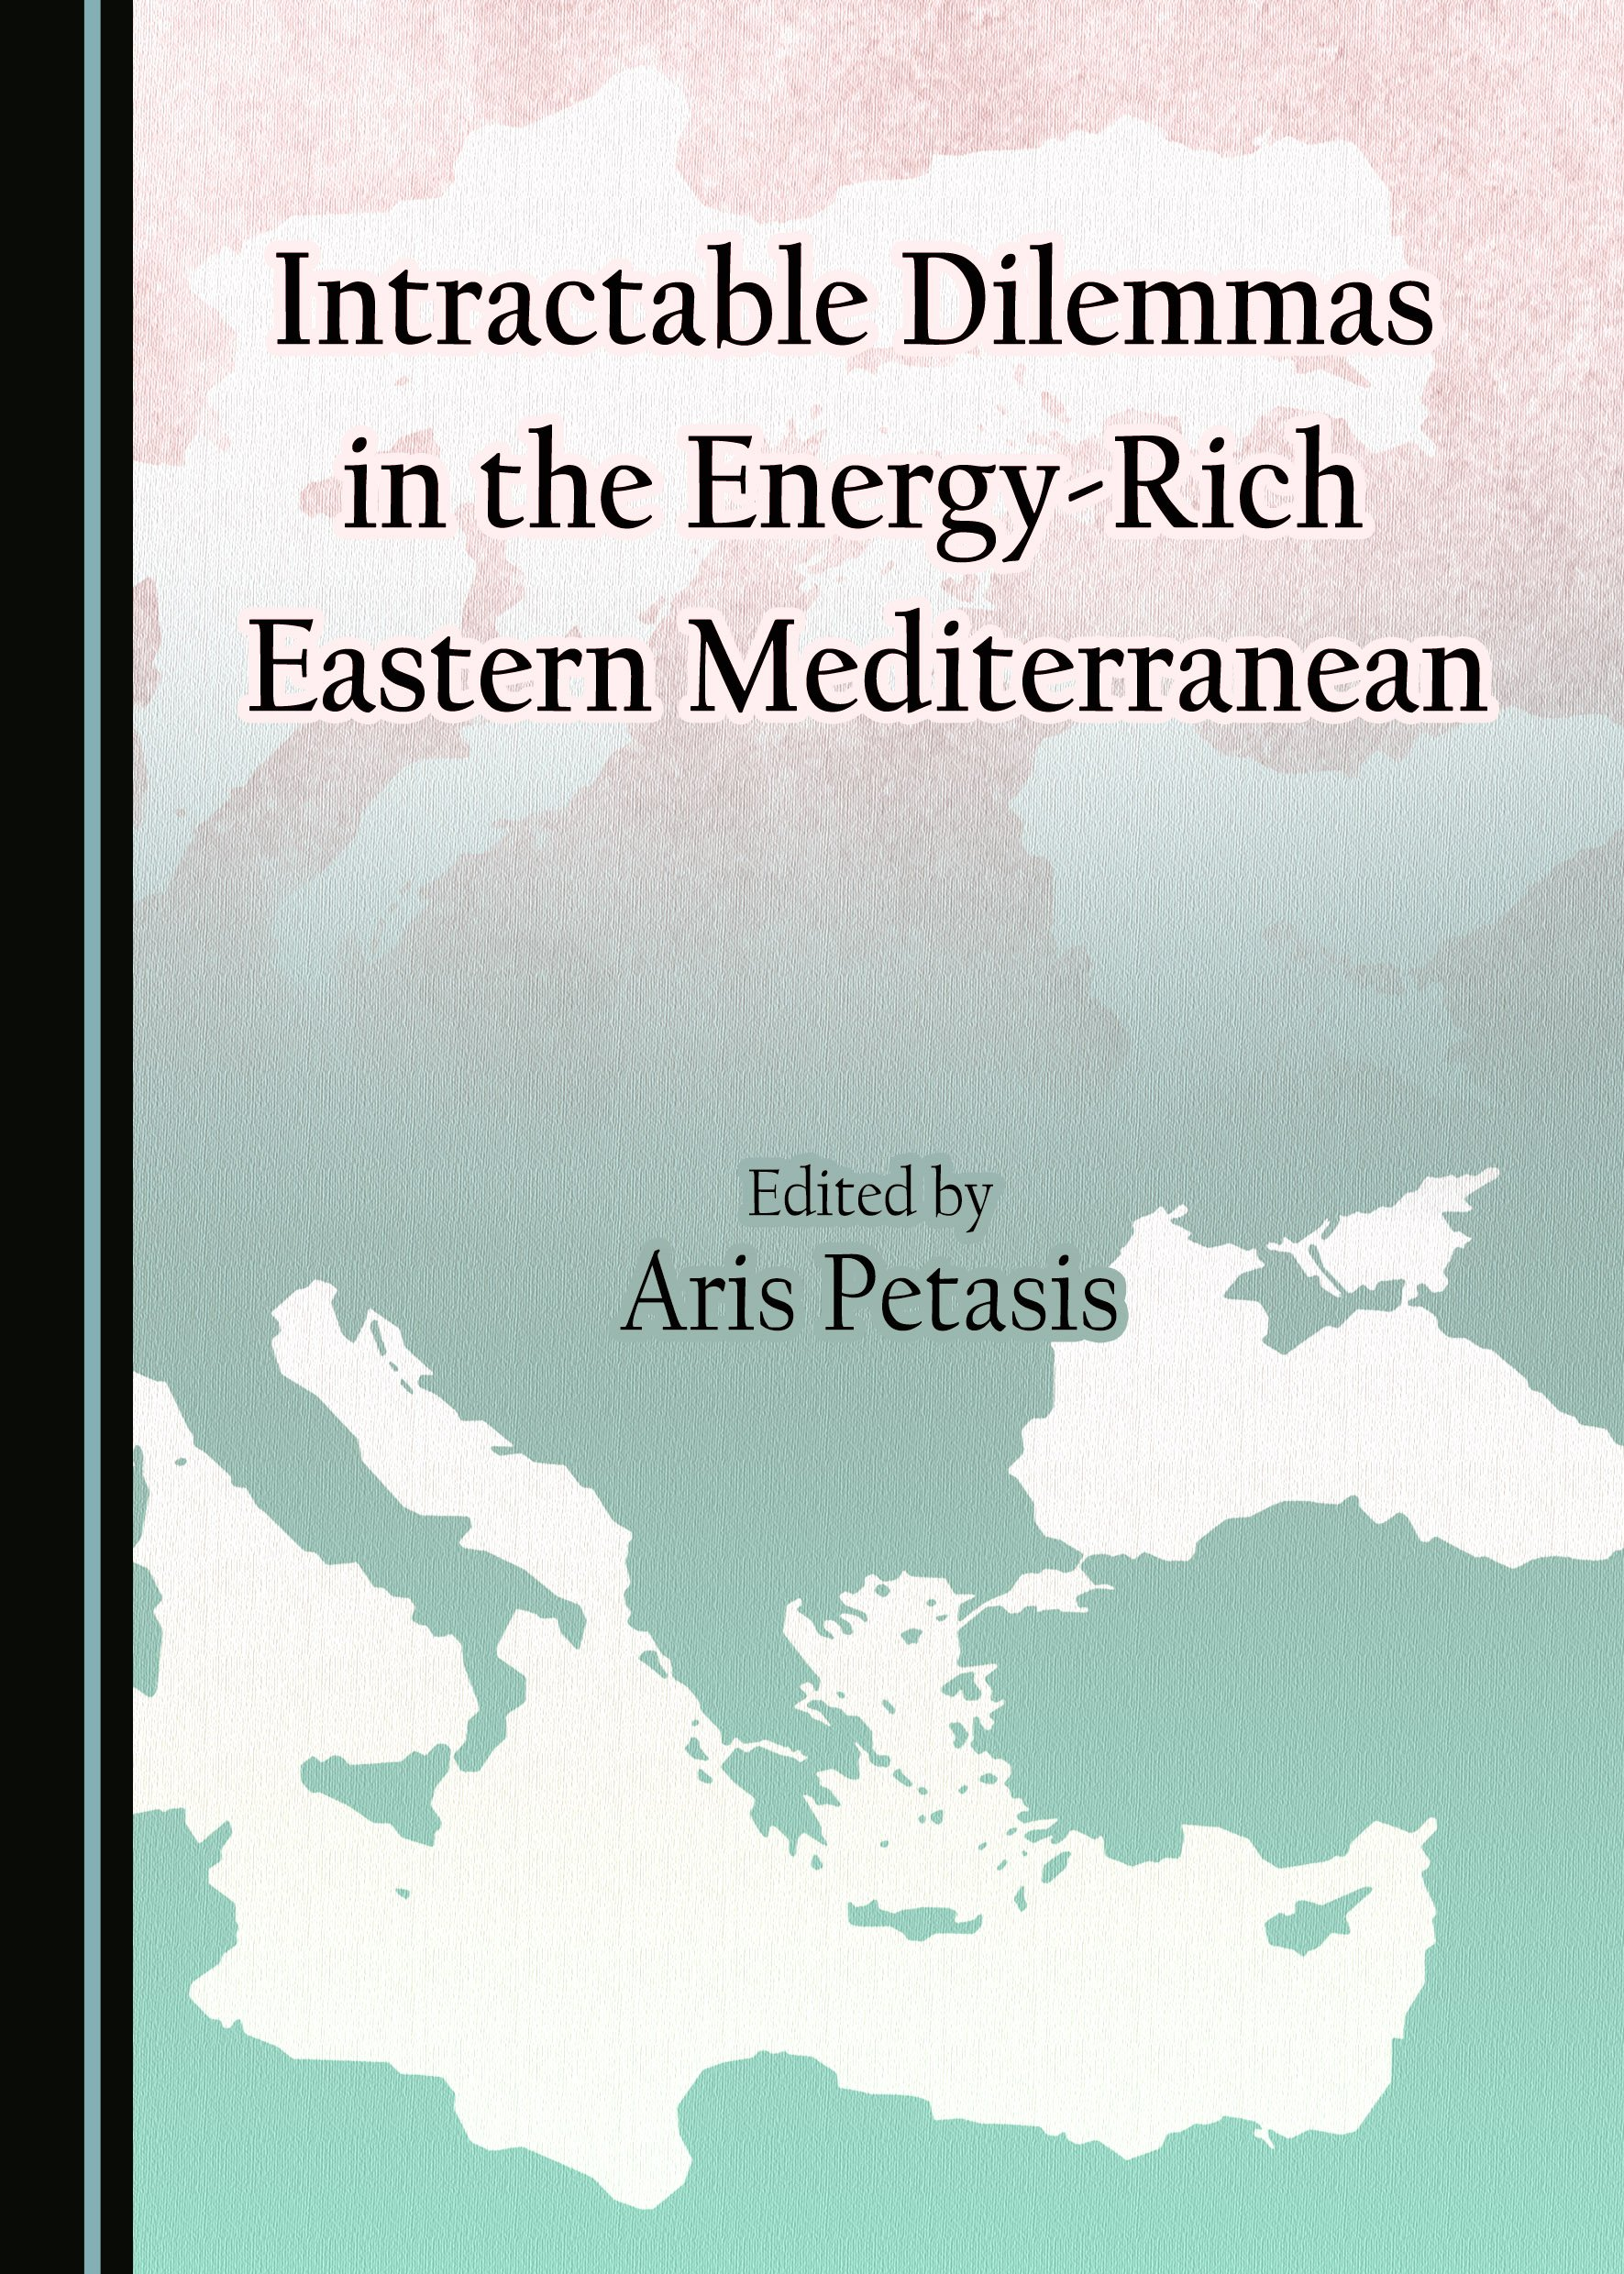 Intractable Dilemmas in the Energy-Rich Eastern Mediterranean